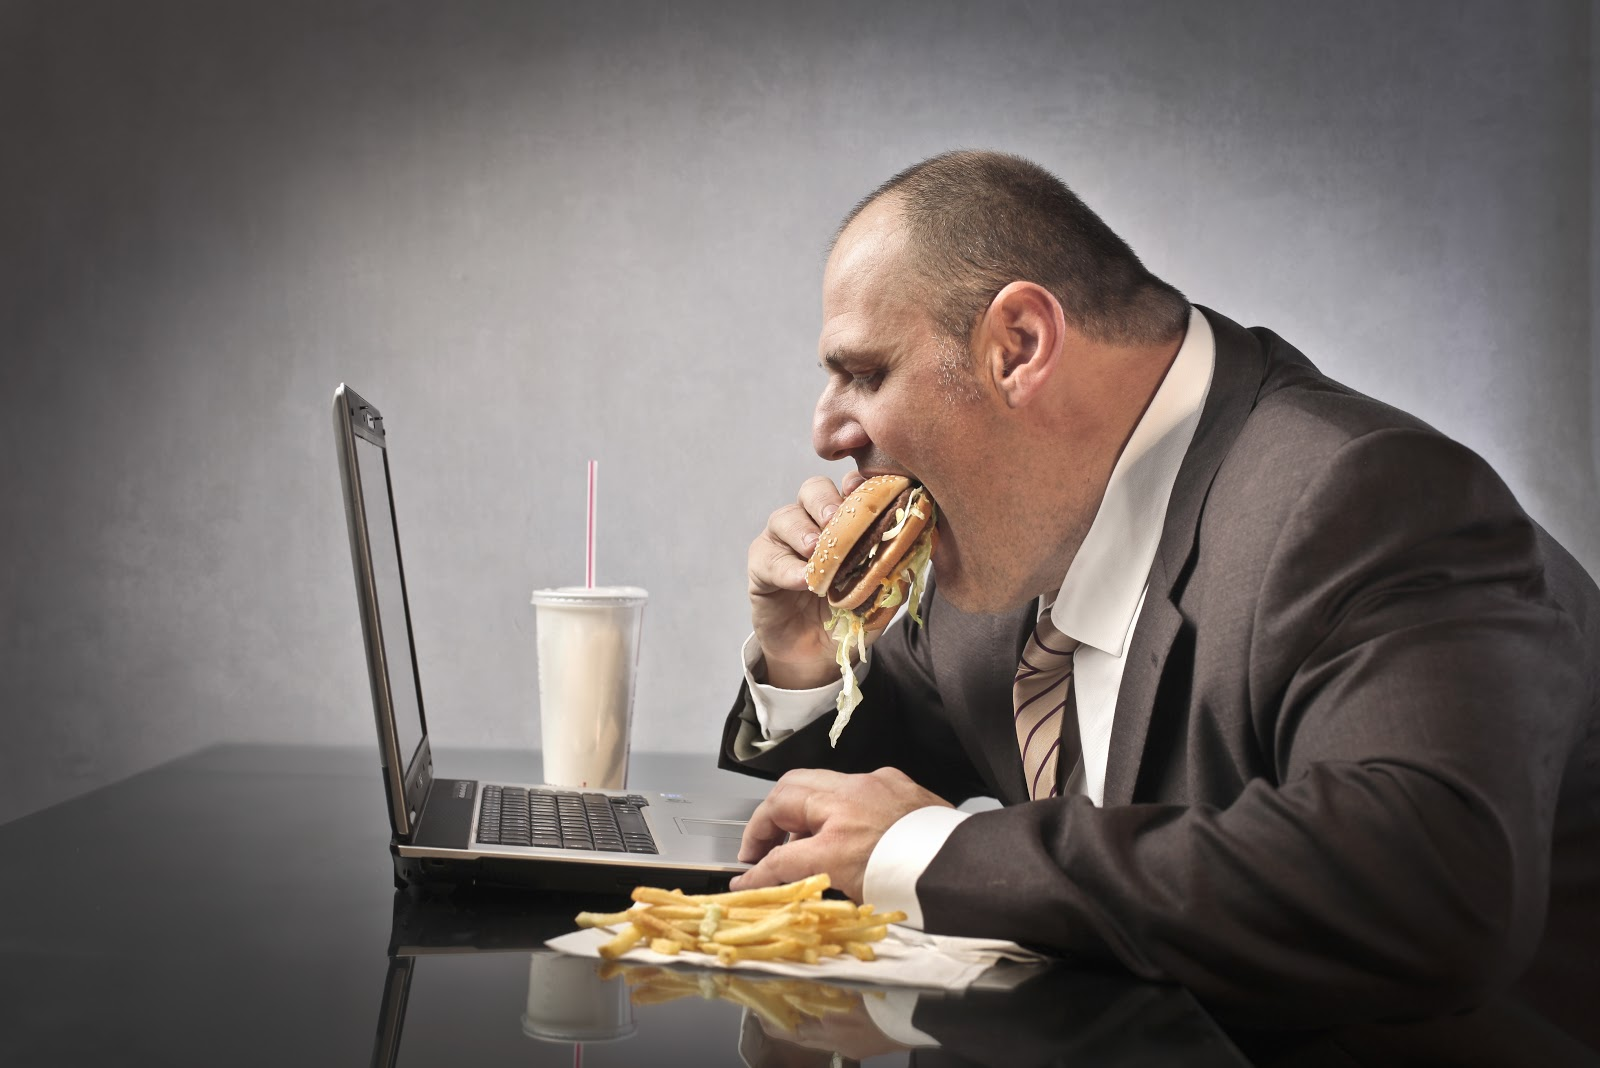 A businessman in a suit using a computer while eating a cheeseburger and fries